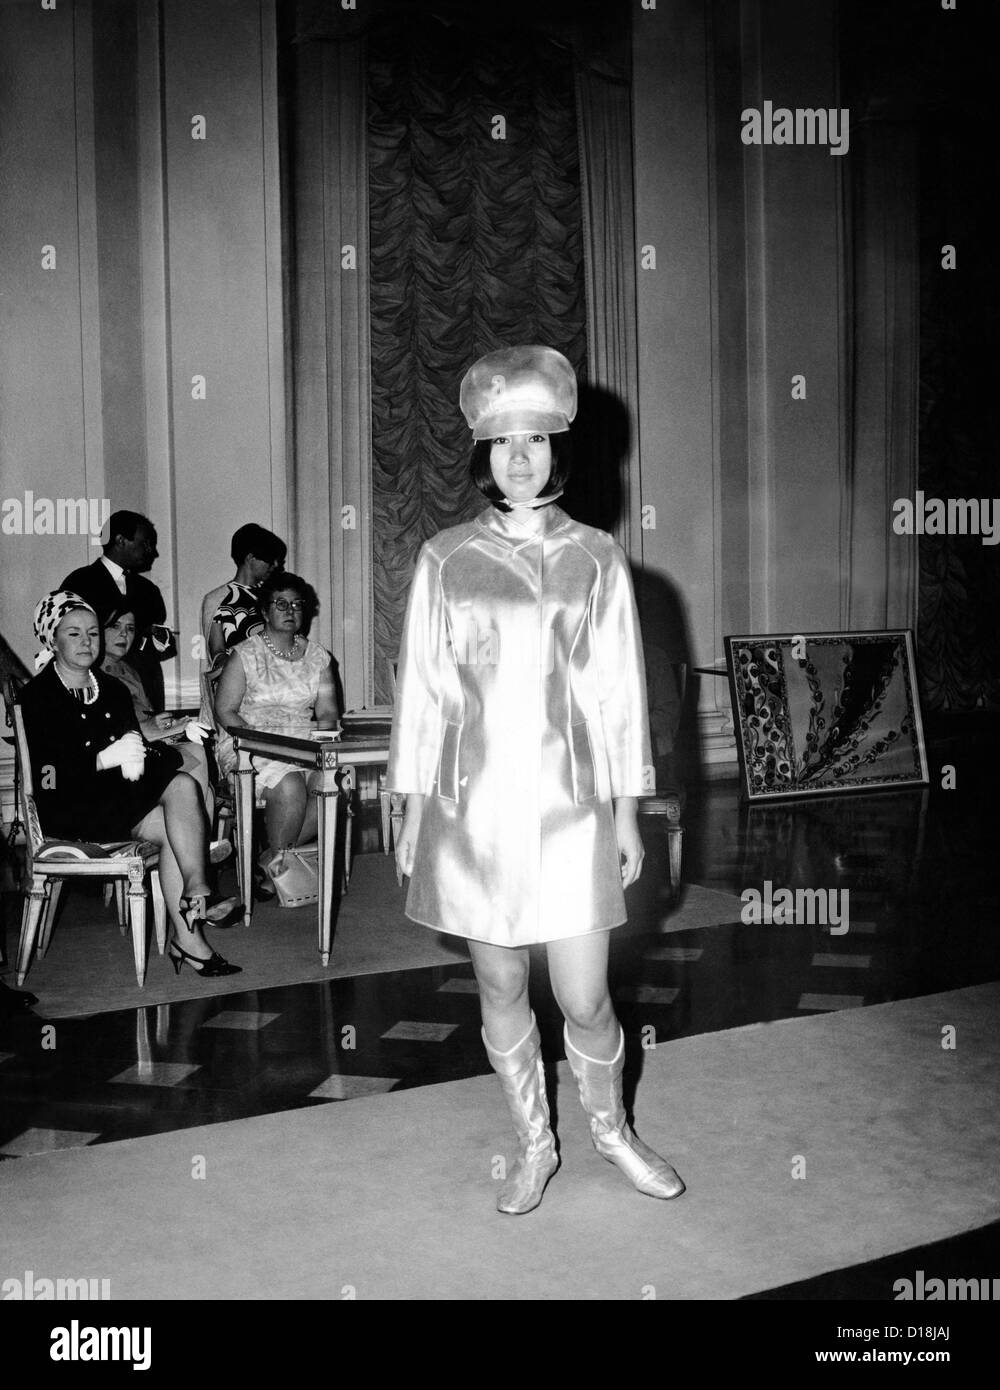 Emilio Pucci ensemble influenced by his futuristic stewardess designs for Braniff International Airways. July 1967. Stock Photo